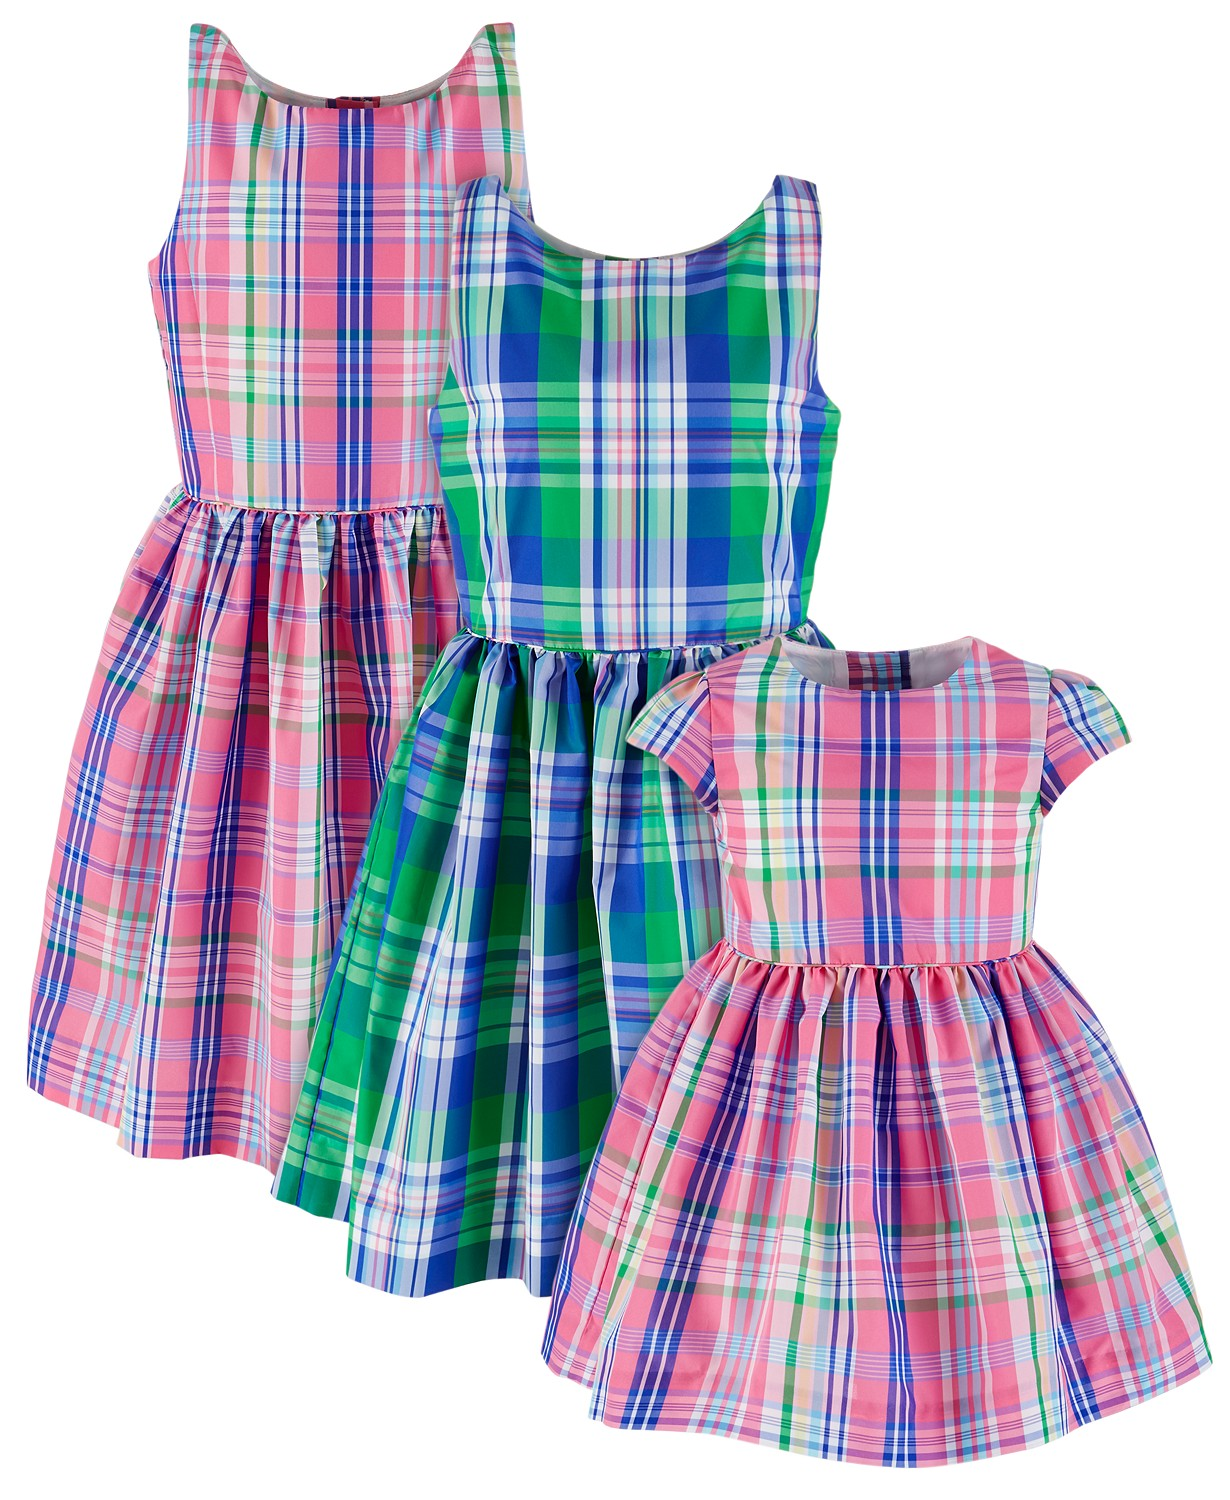 Plaid Ralph Lauren Easter dresses.